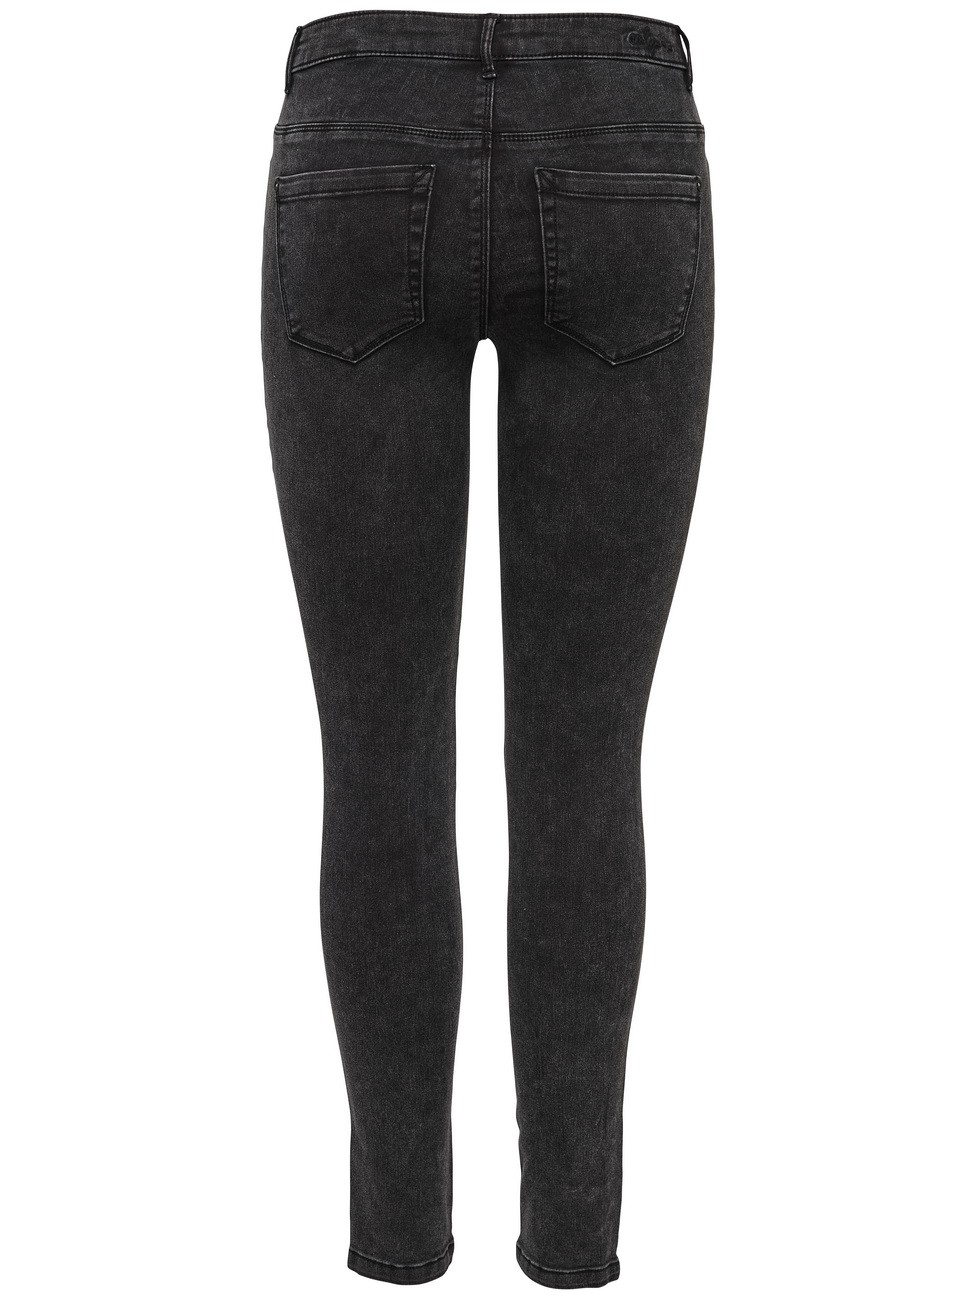 Only Damen Jeans onlROYAL - Skinny Fit - Schwarz - Black